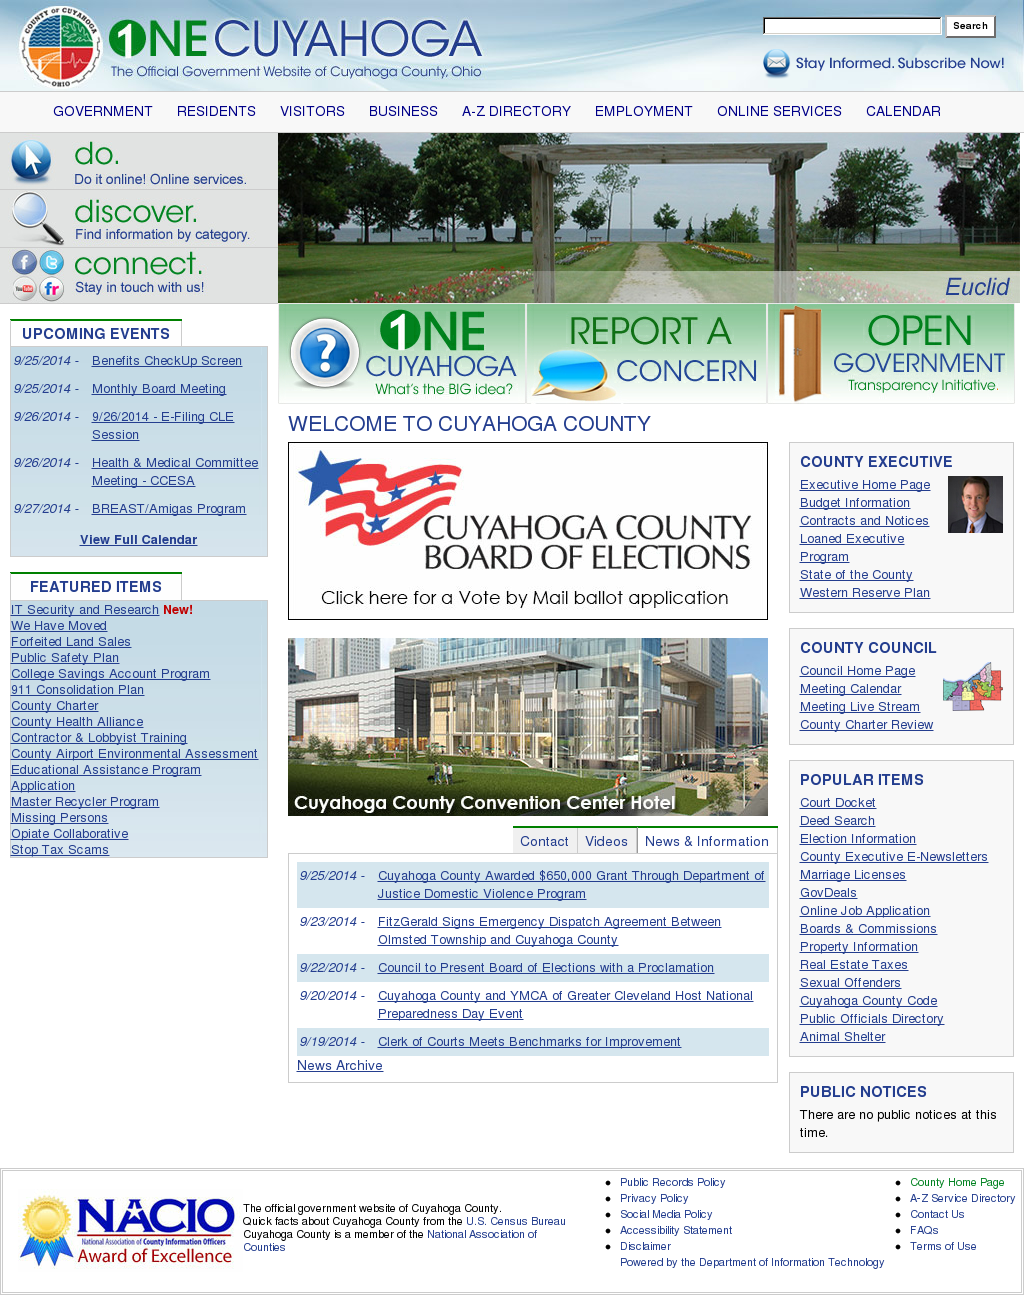 Cuyahoga County Competitors, Revenue and Employees - Owler Company